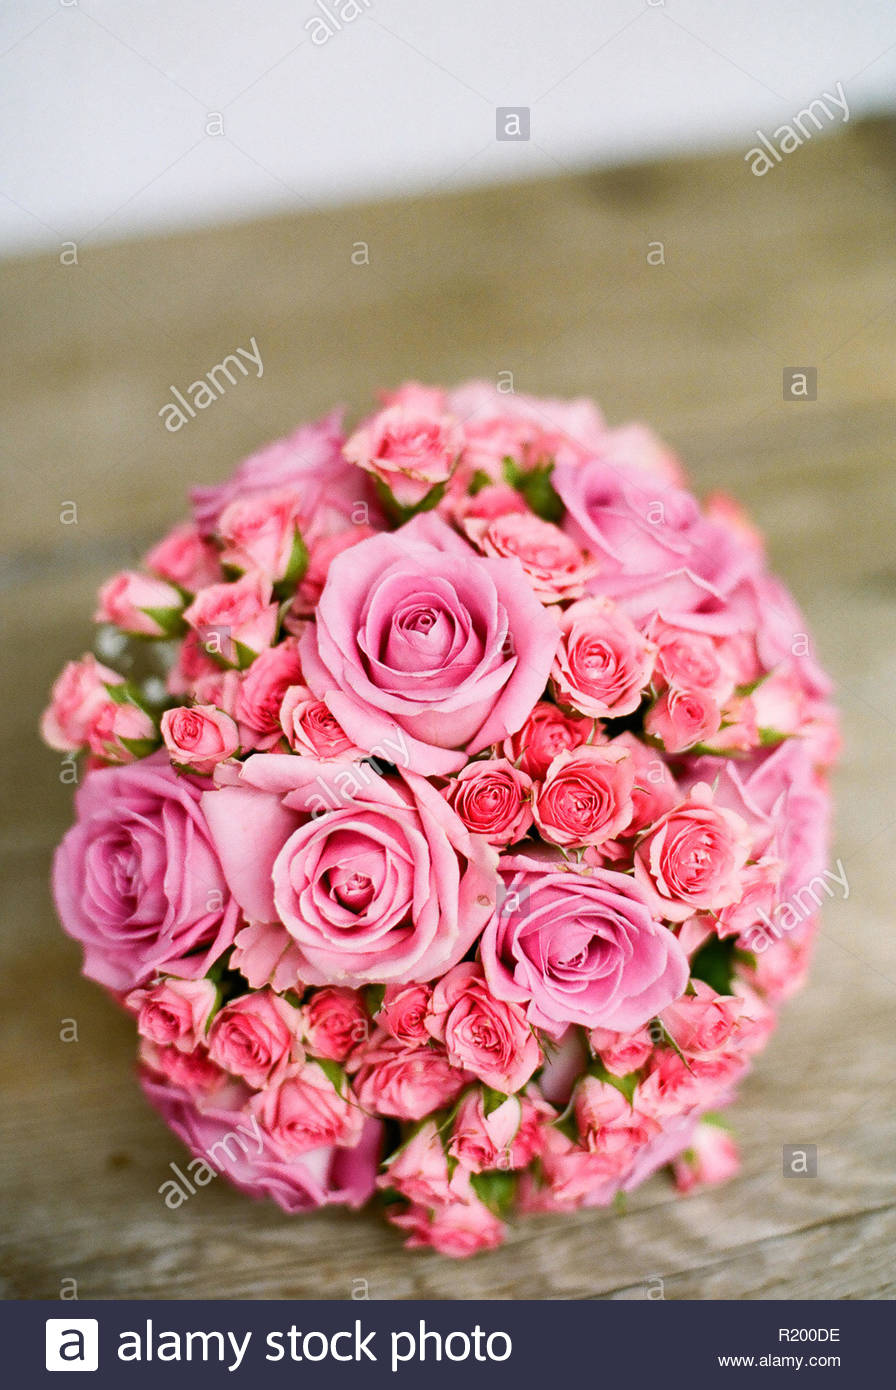 While flowers with a love connection, like roses and carnations, are popular, Everyone's favorite wedding flower, the rose, has different meanings dep - Stock Image